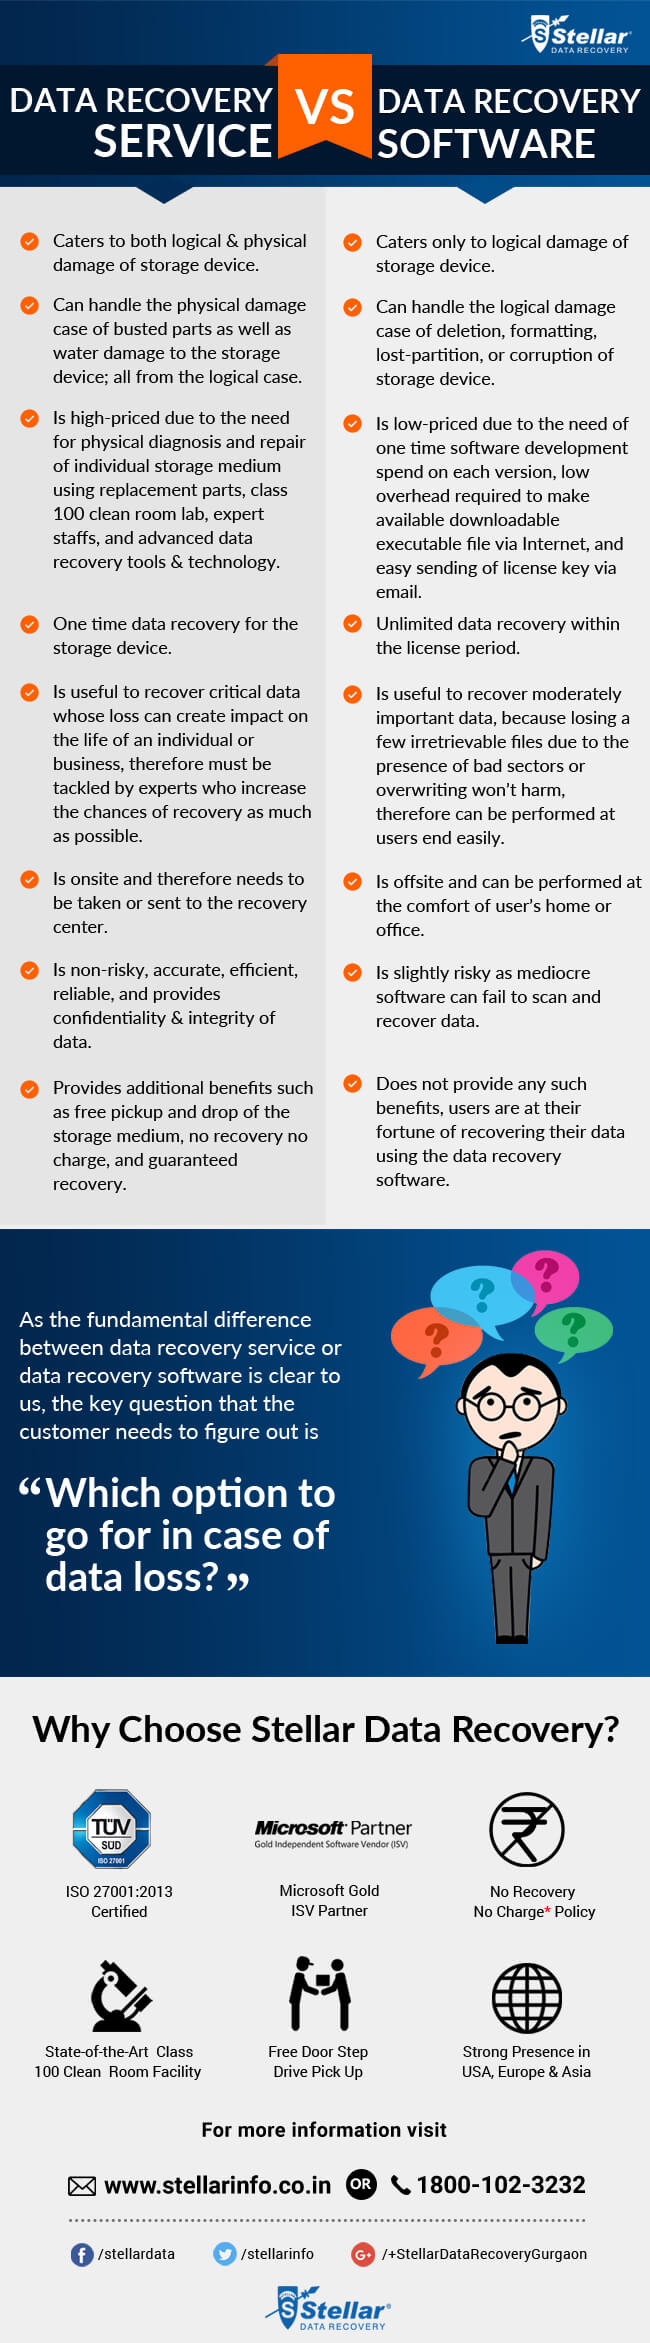 Data Recovery Service vs Data Recovery Software infographic